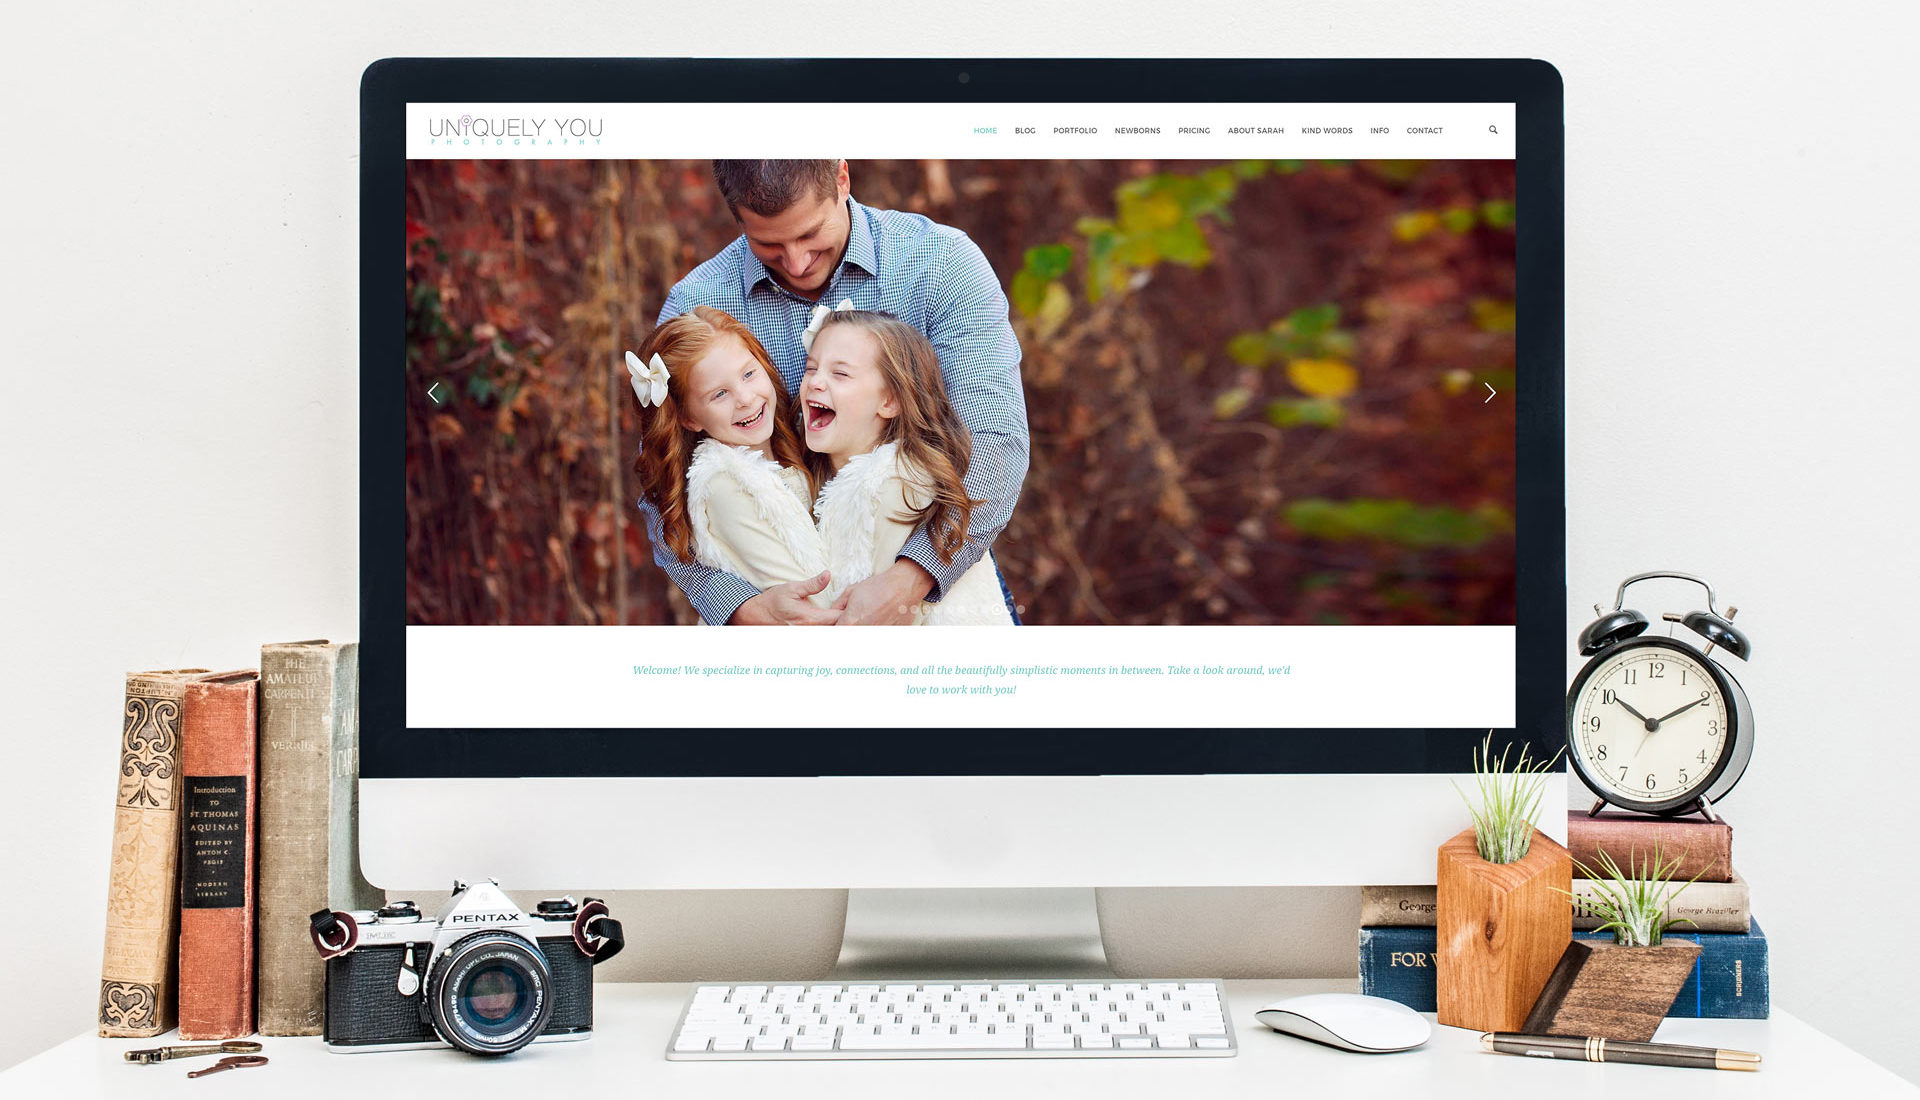 wordpress customization and seo services for photographers